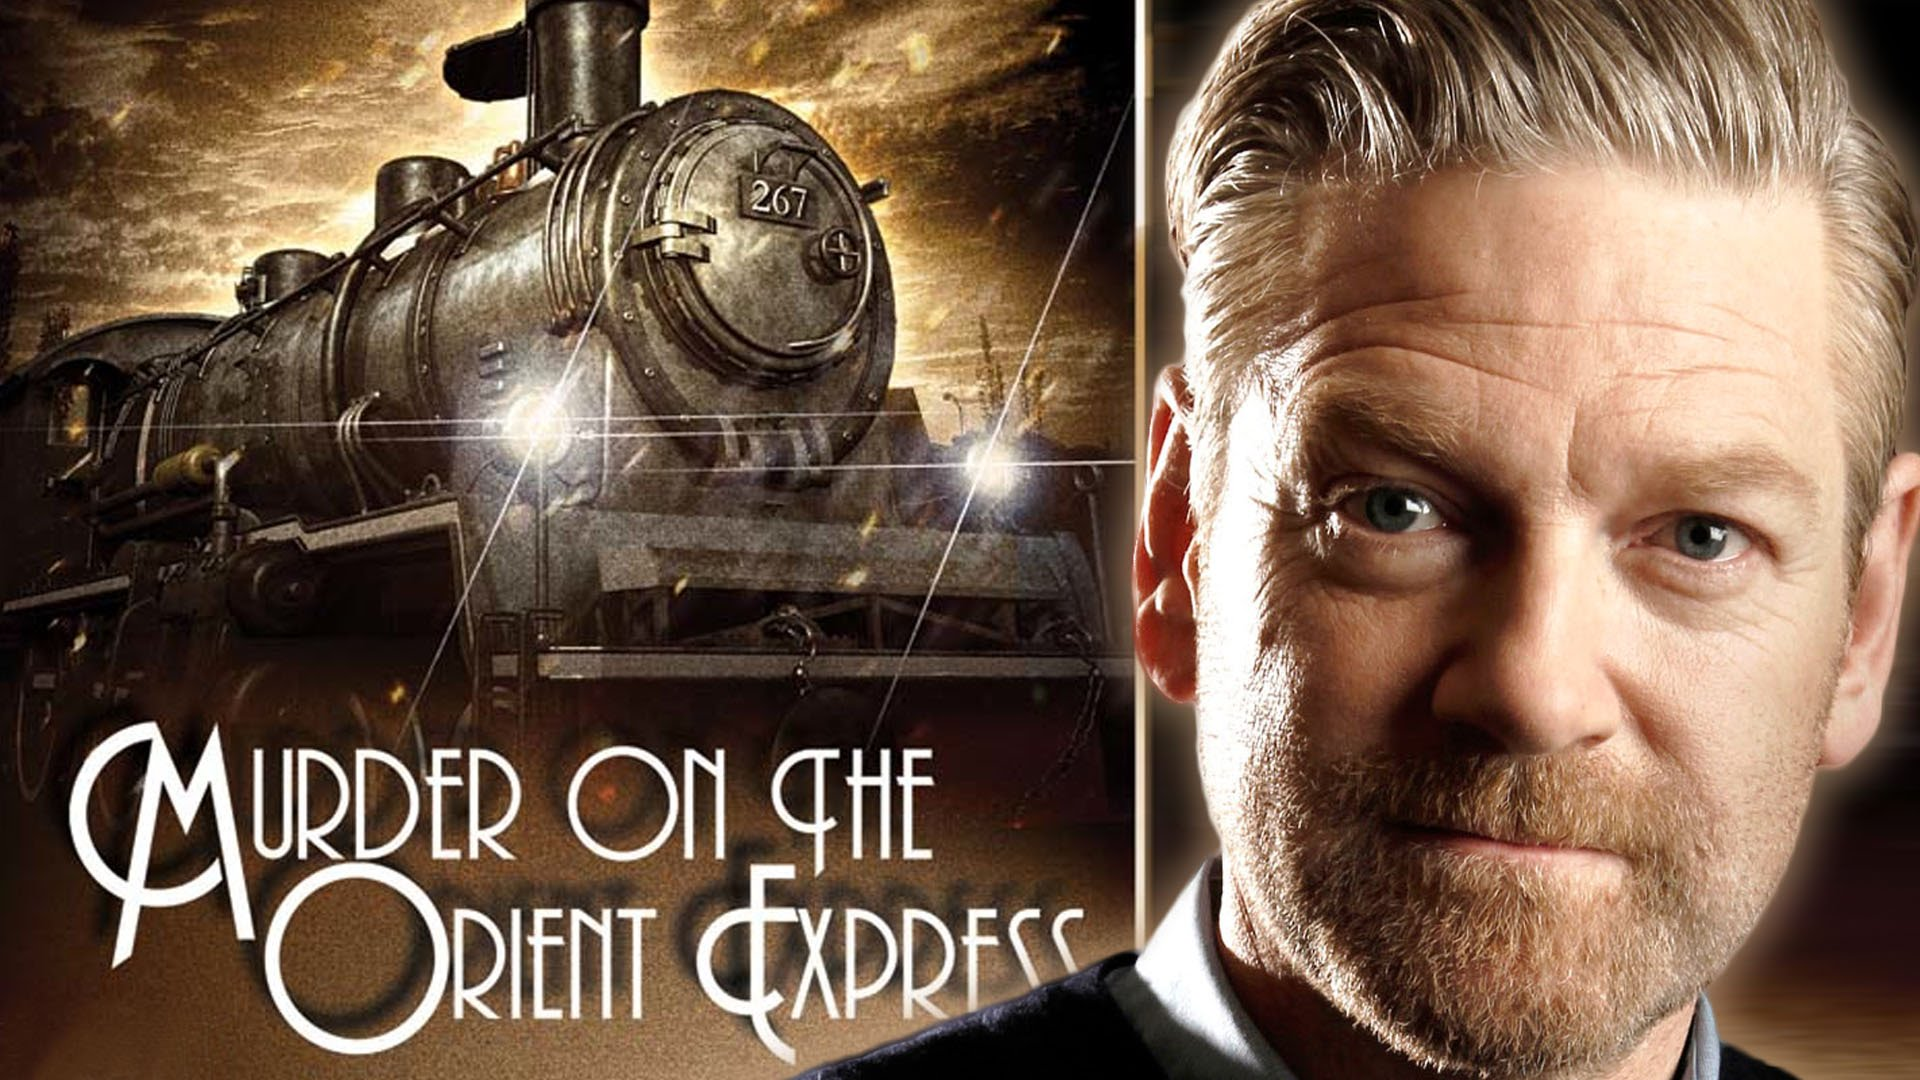 asesinato-orient-express-RockinchicLifestyle-cine-2